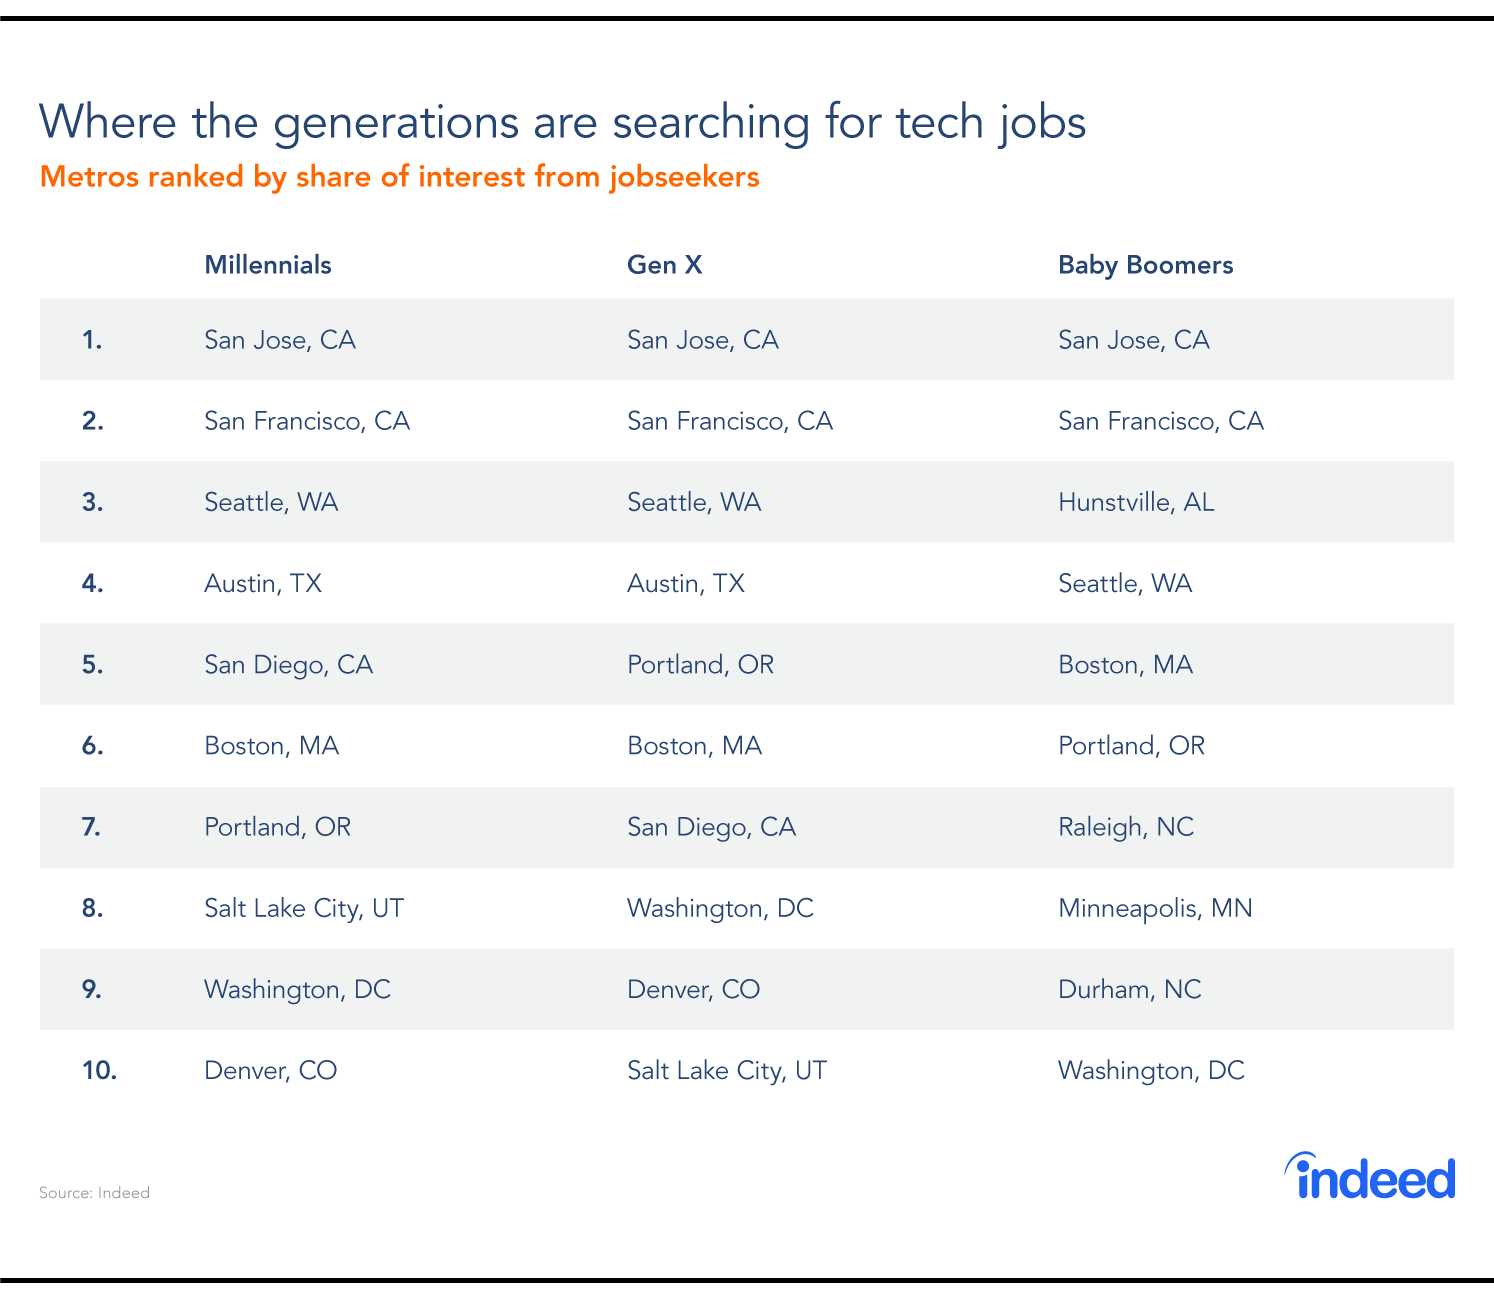 Where the generations are searching for tech jobs.